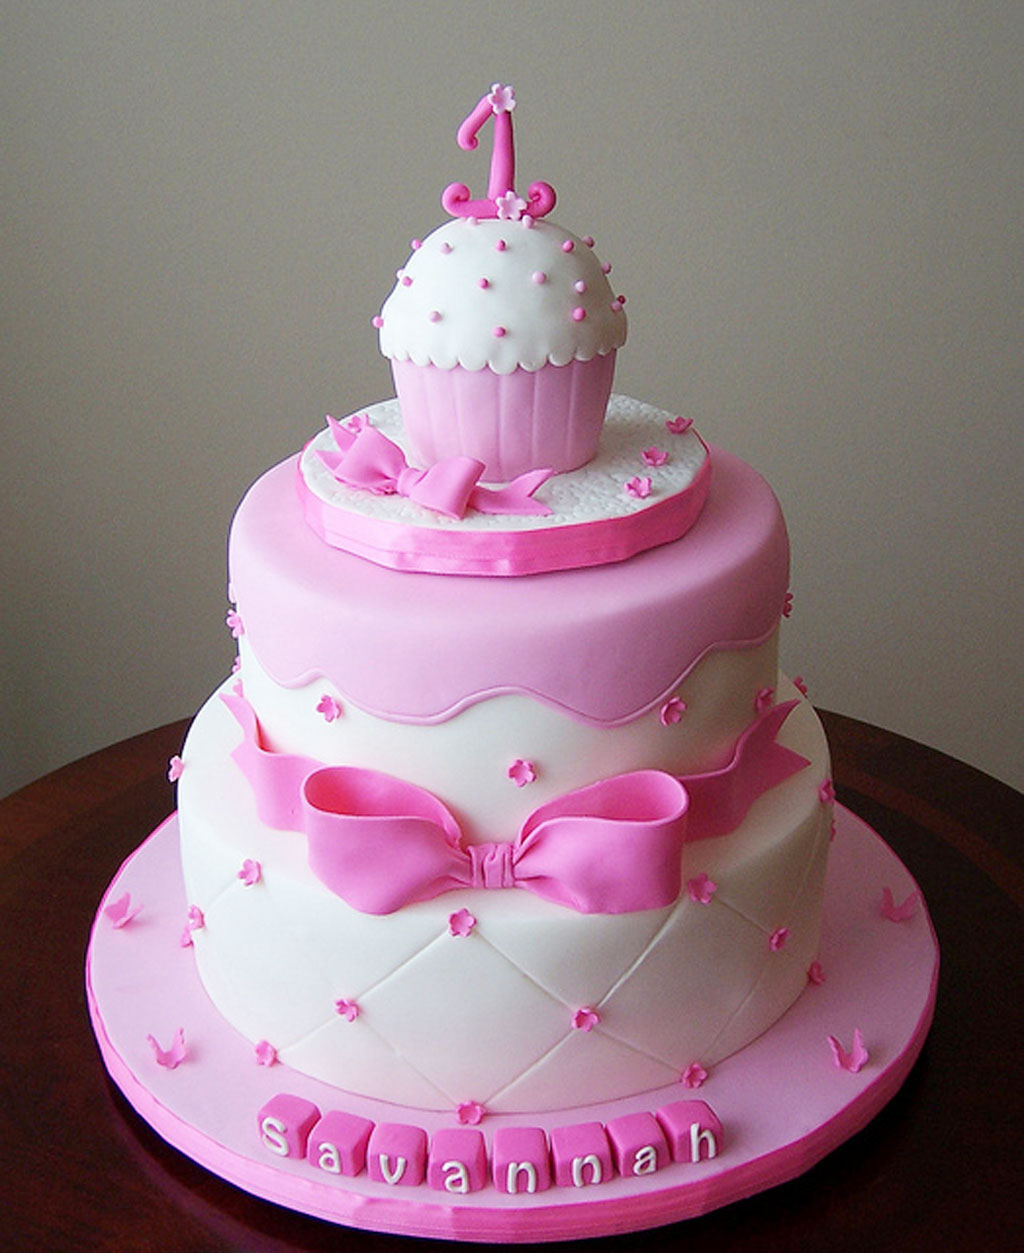 Cake Ideas For First Birthday Girl : Girls 1st Birthday Cakes Birthday Cake - Cake Ideas by ...